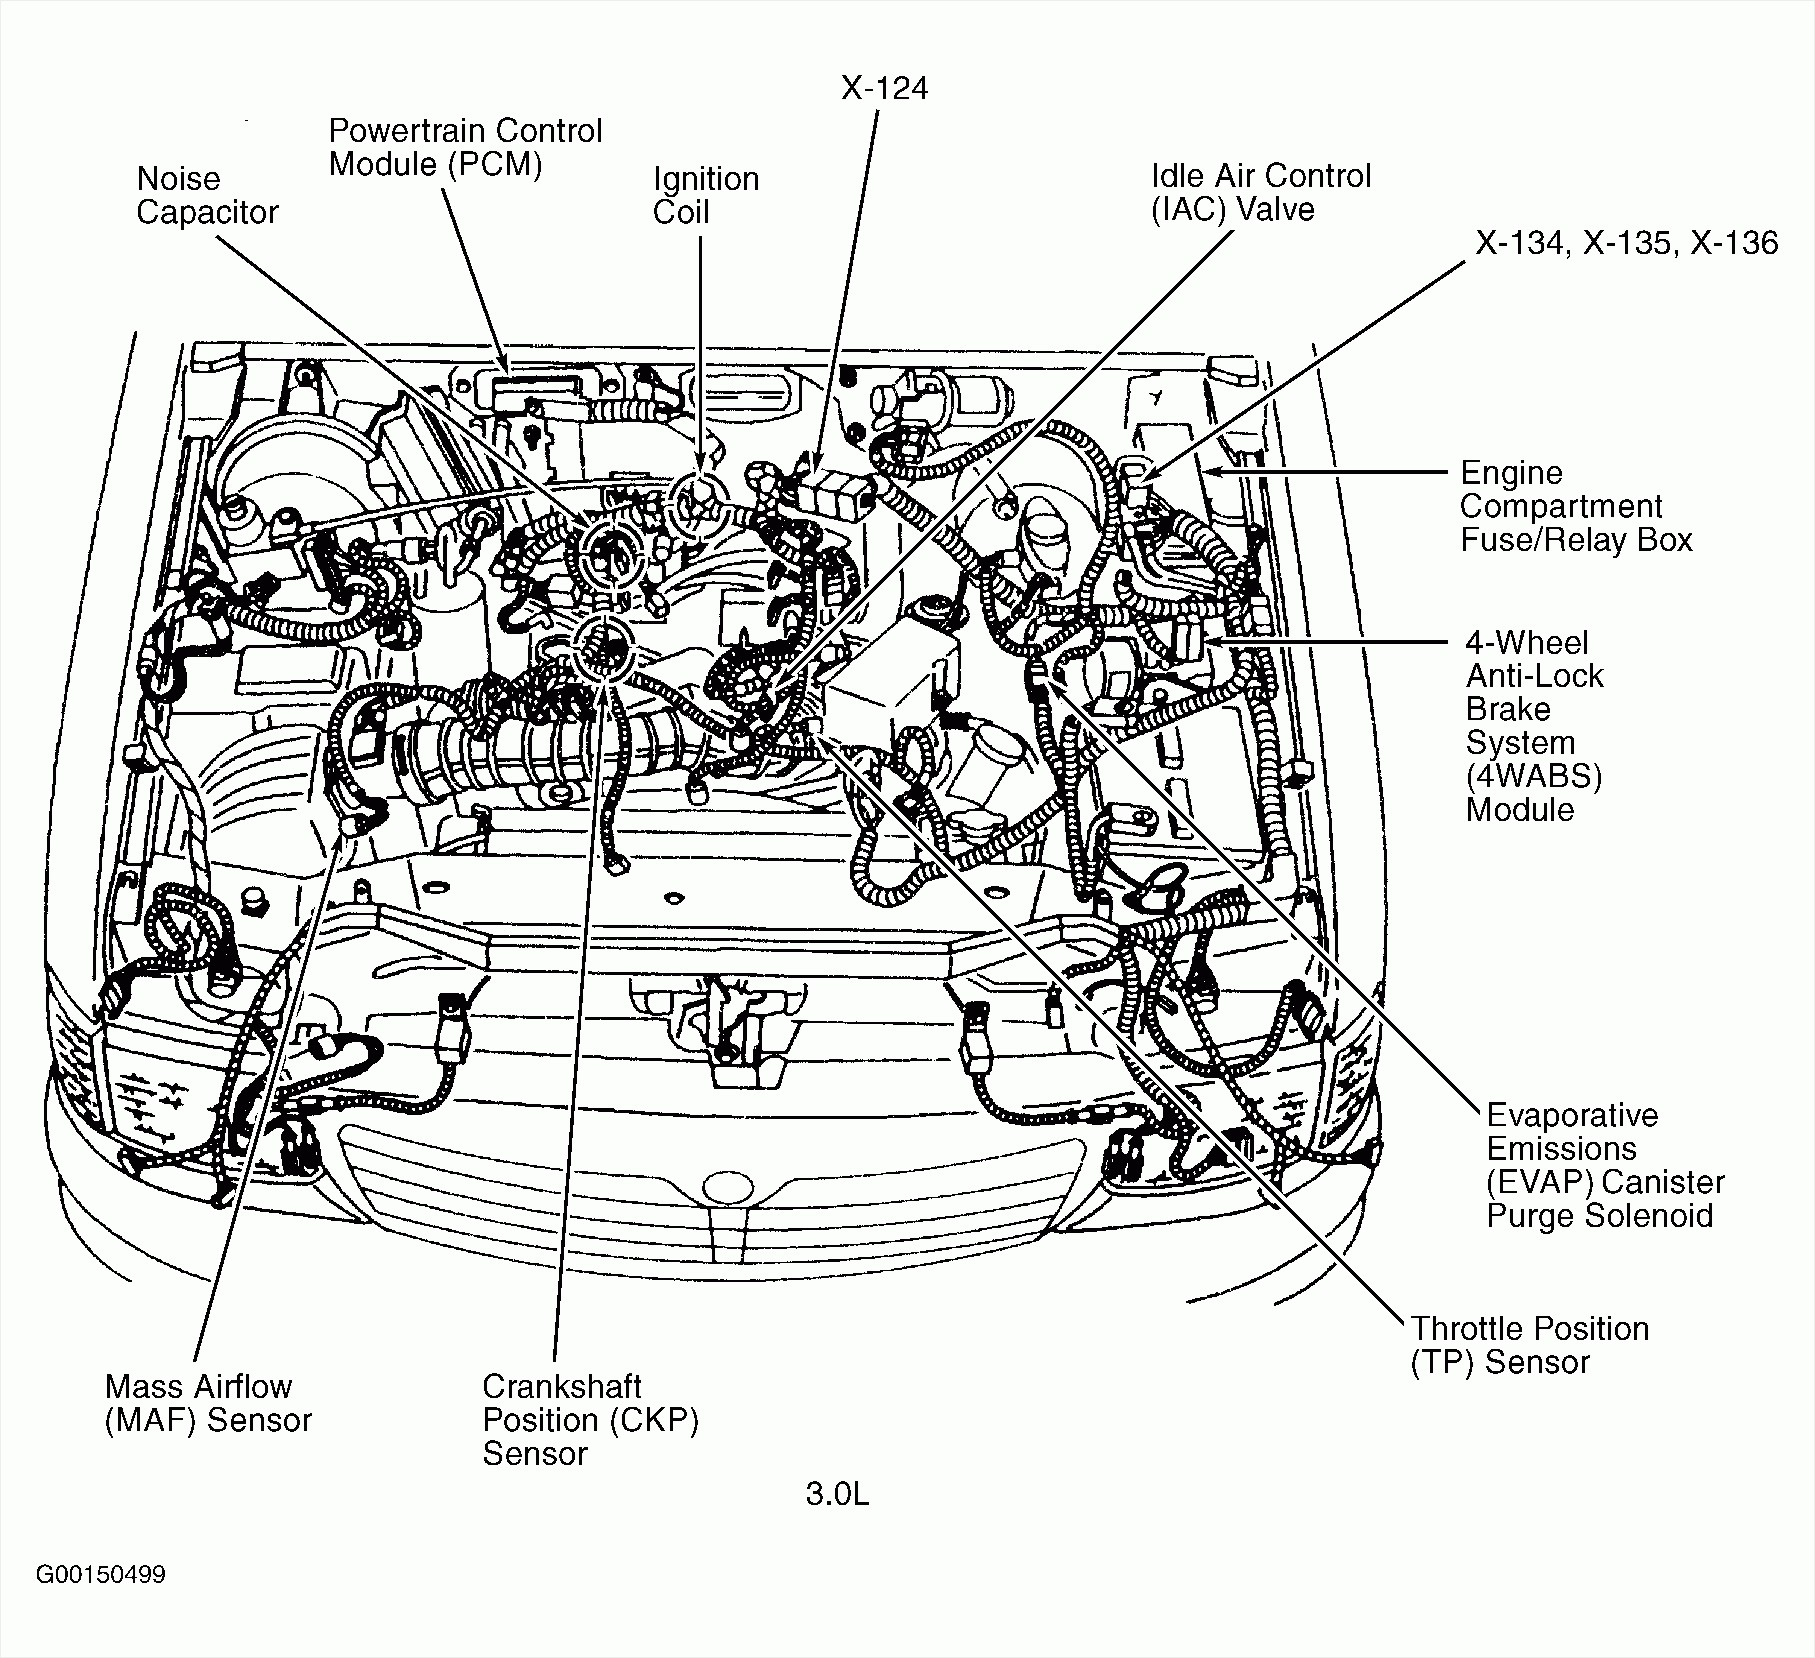 1999 2004 Mustang Wiring Diagram Best Electrical Circuit 1972 Engine 05 F250 6 0 Site Harness 99 Radio